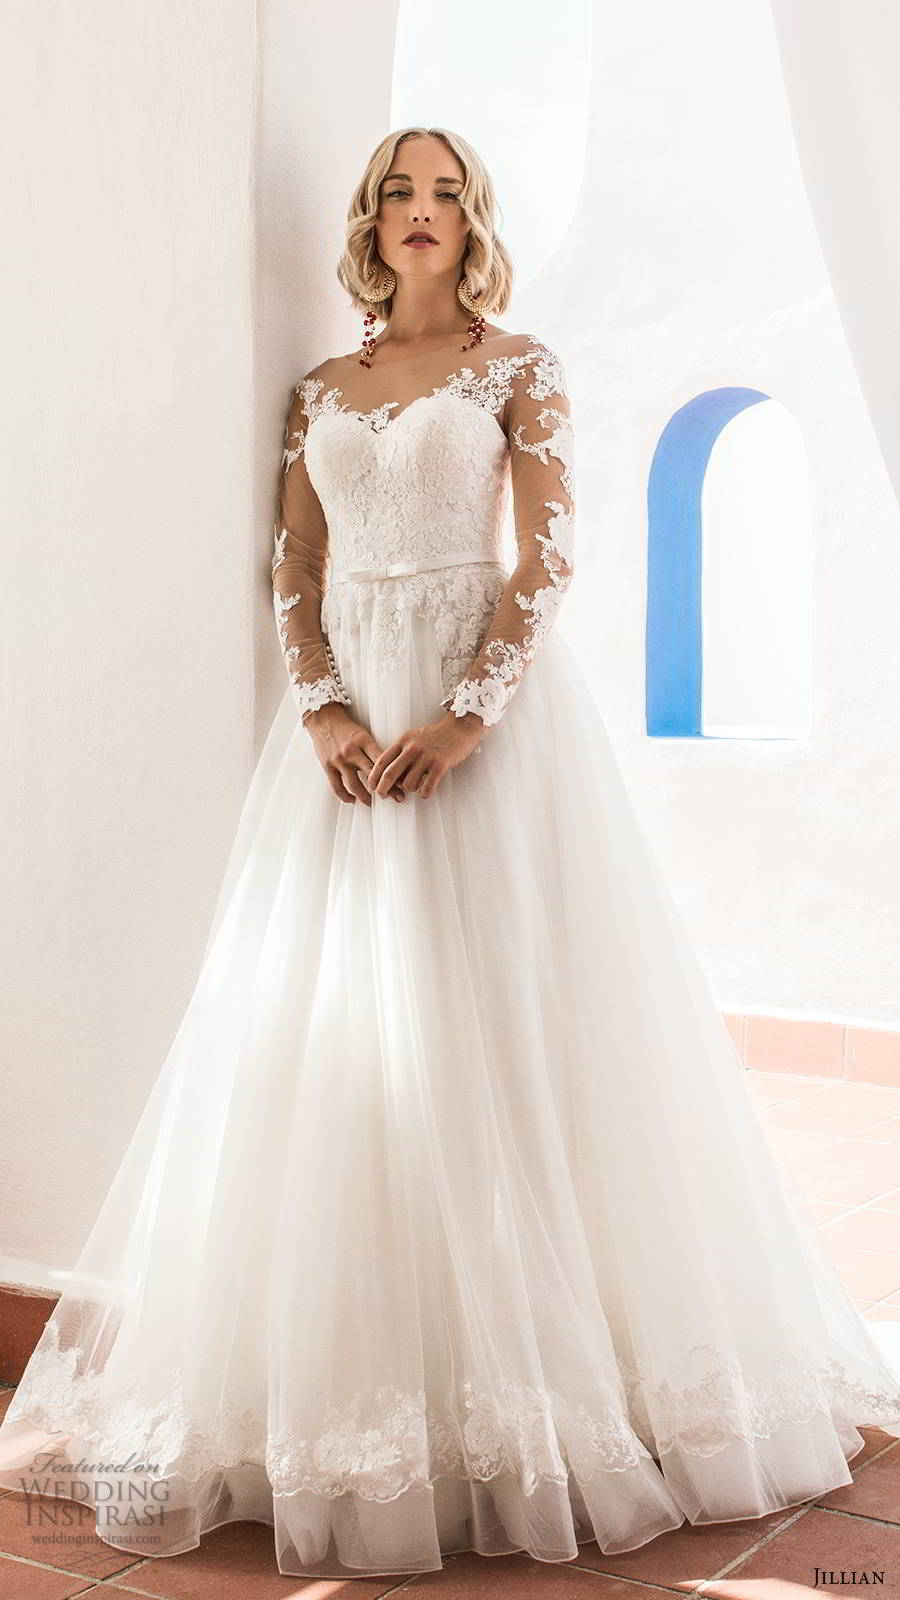 jillian sposa 2020 bridal illusion long sleeves sheer bateau sweeetheart neckline embellished lace bodice a line ball gown wedding dress illusion back chapel train (4) mv